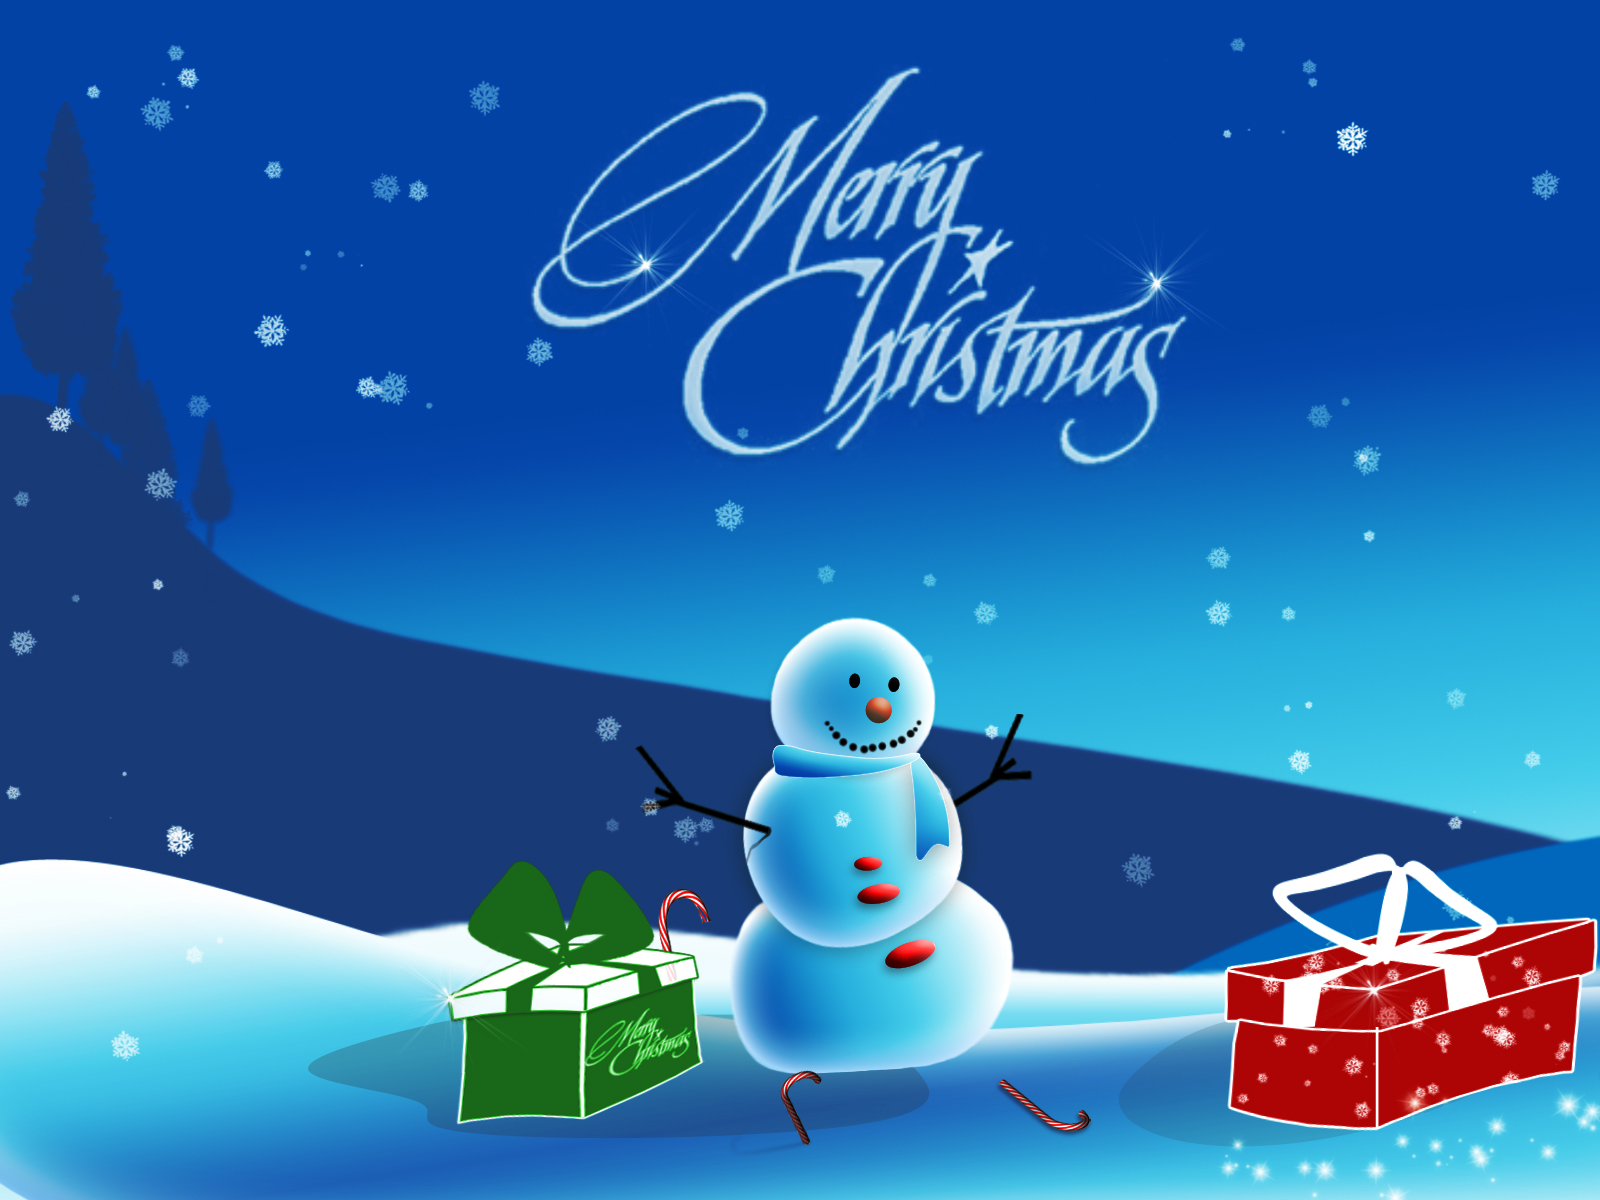 Wallpapers Screensavers At Msn Greetings Cards and Ecards Online 1600x1200